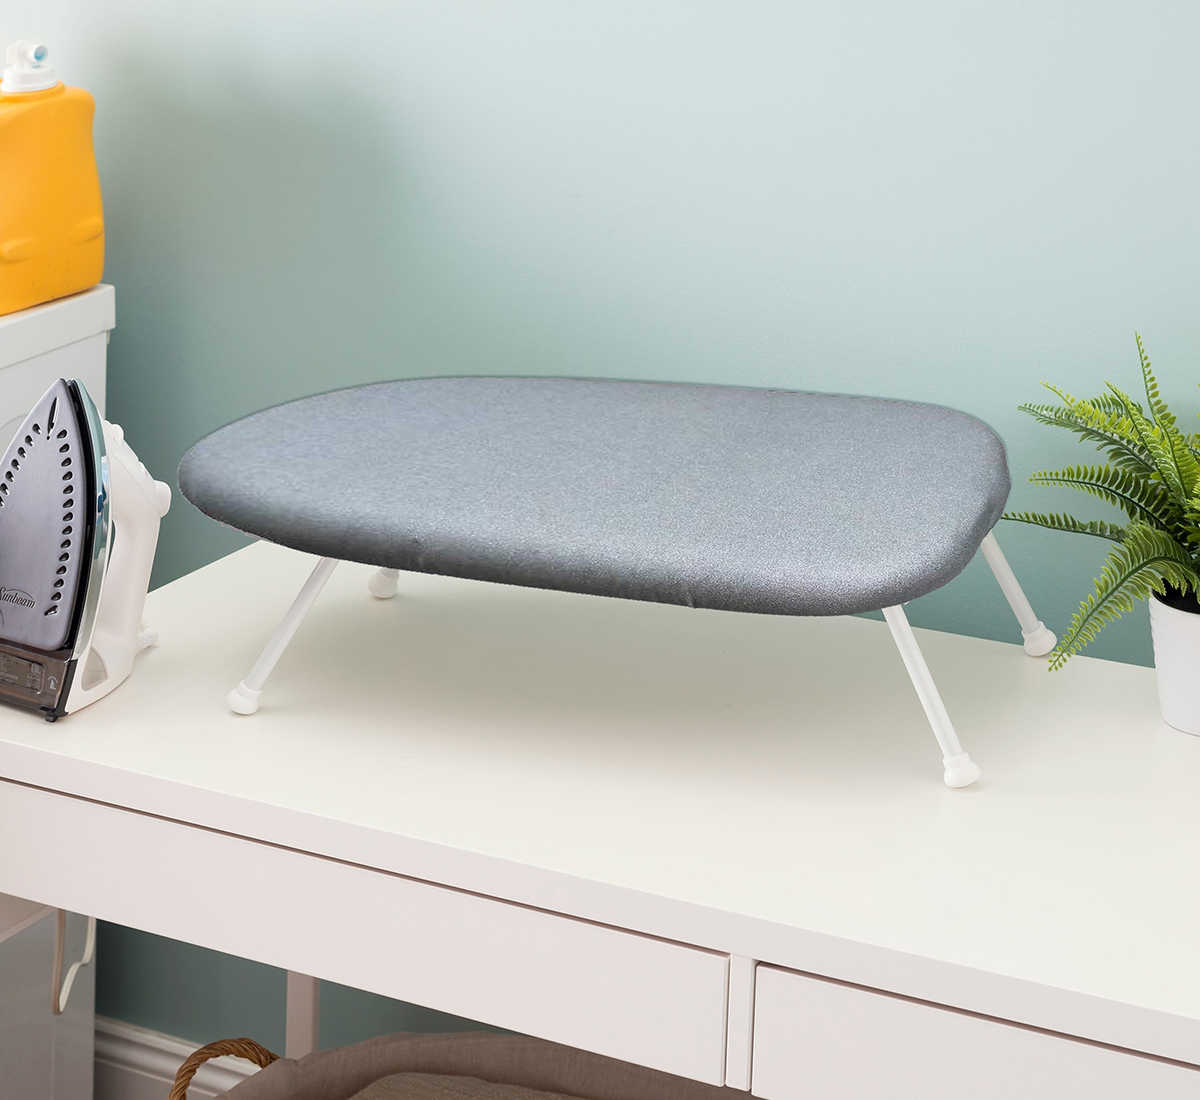 Multifunction Foldable Tabletop Bed Ironing Board with Hanging Hook